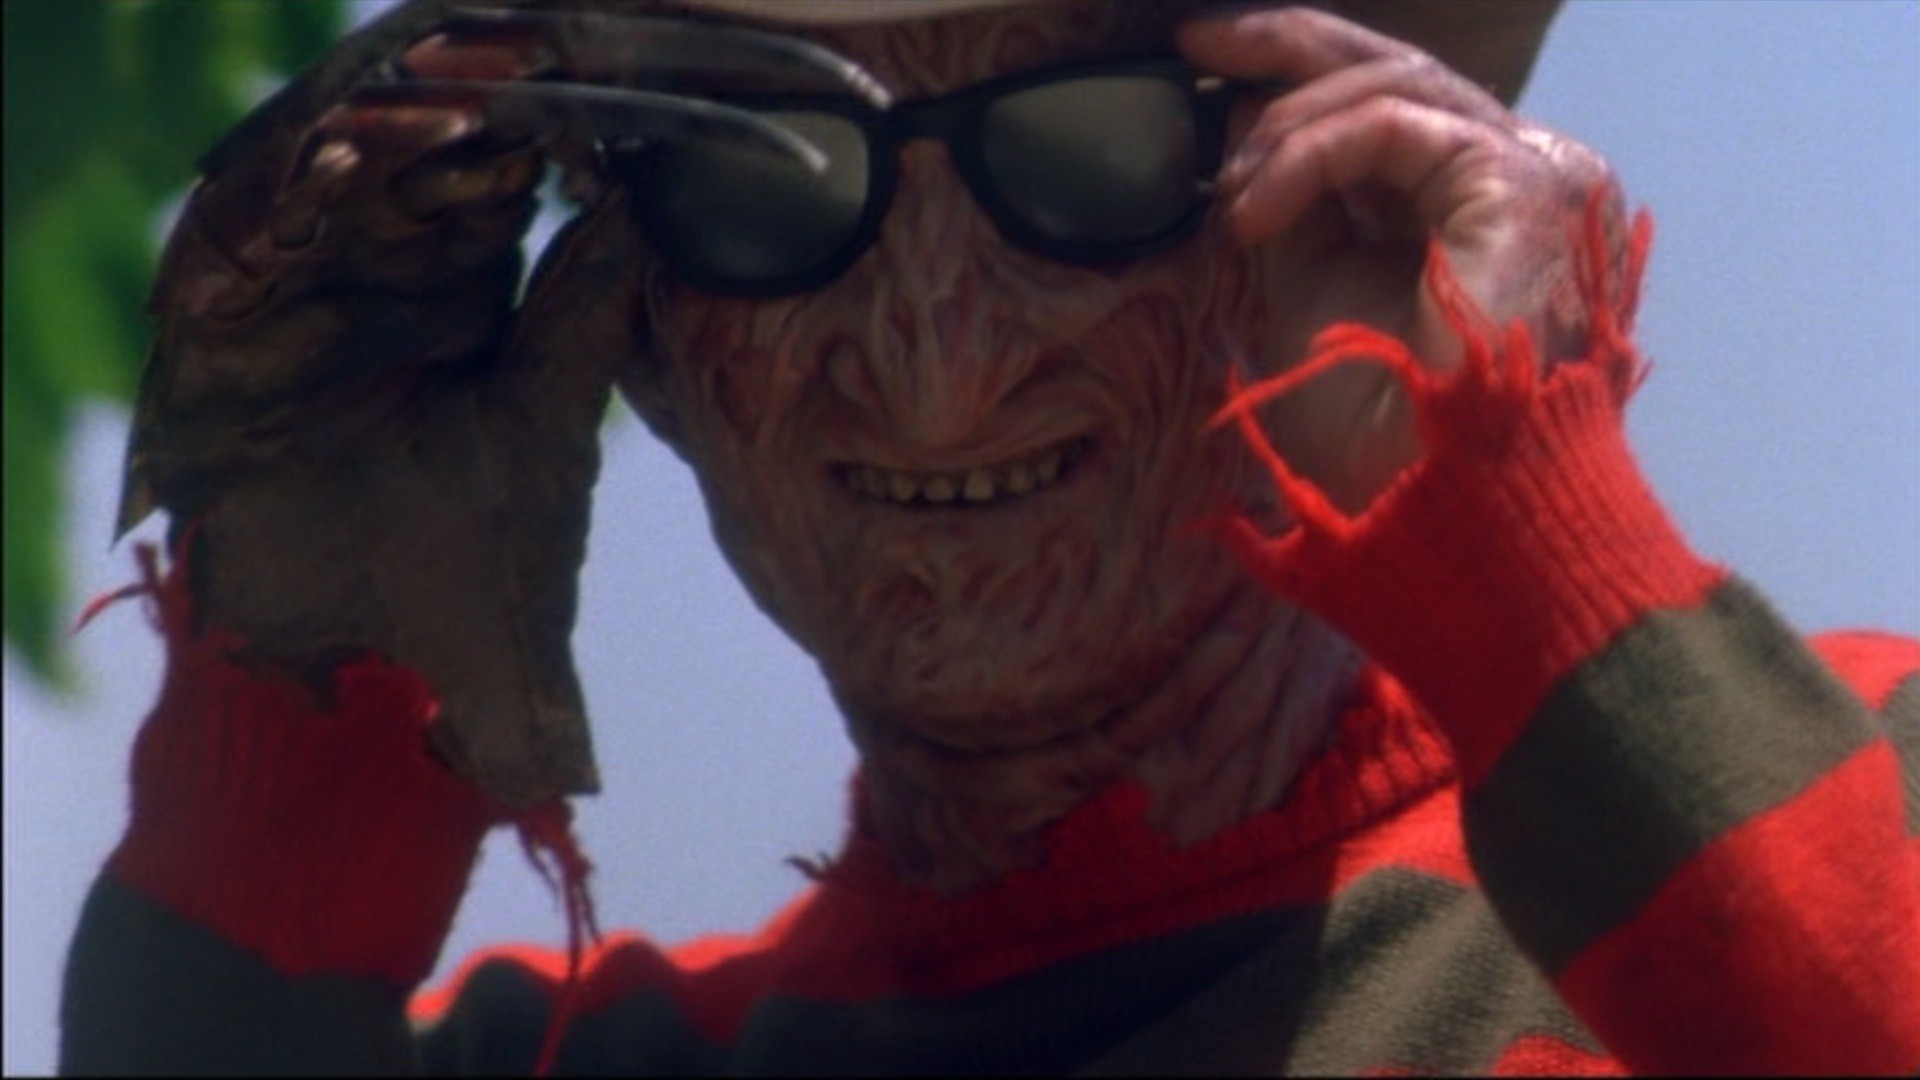 82 Freddy Krueger Wallpaper Hd